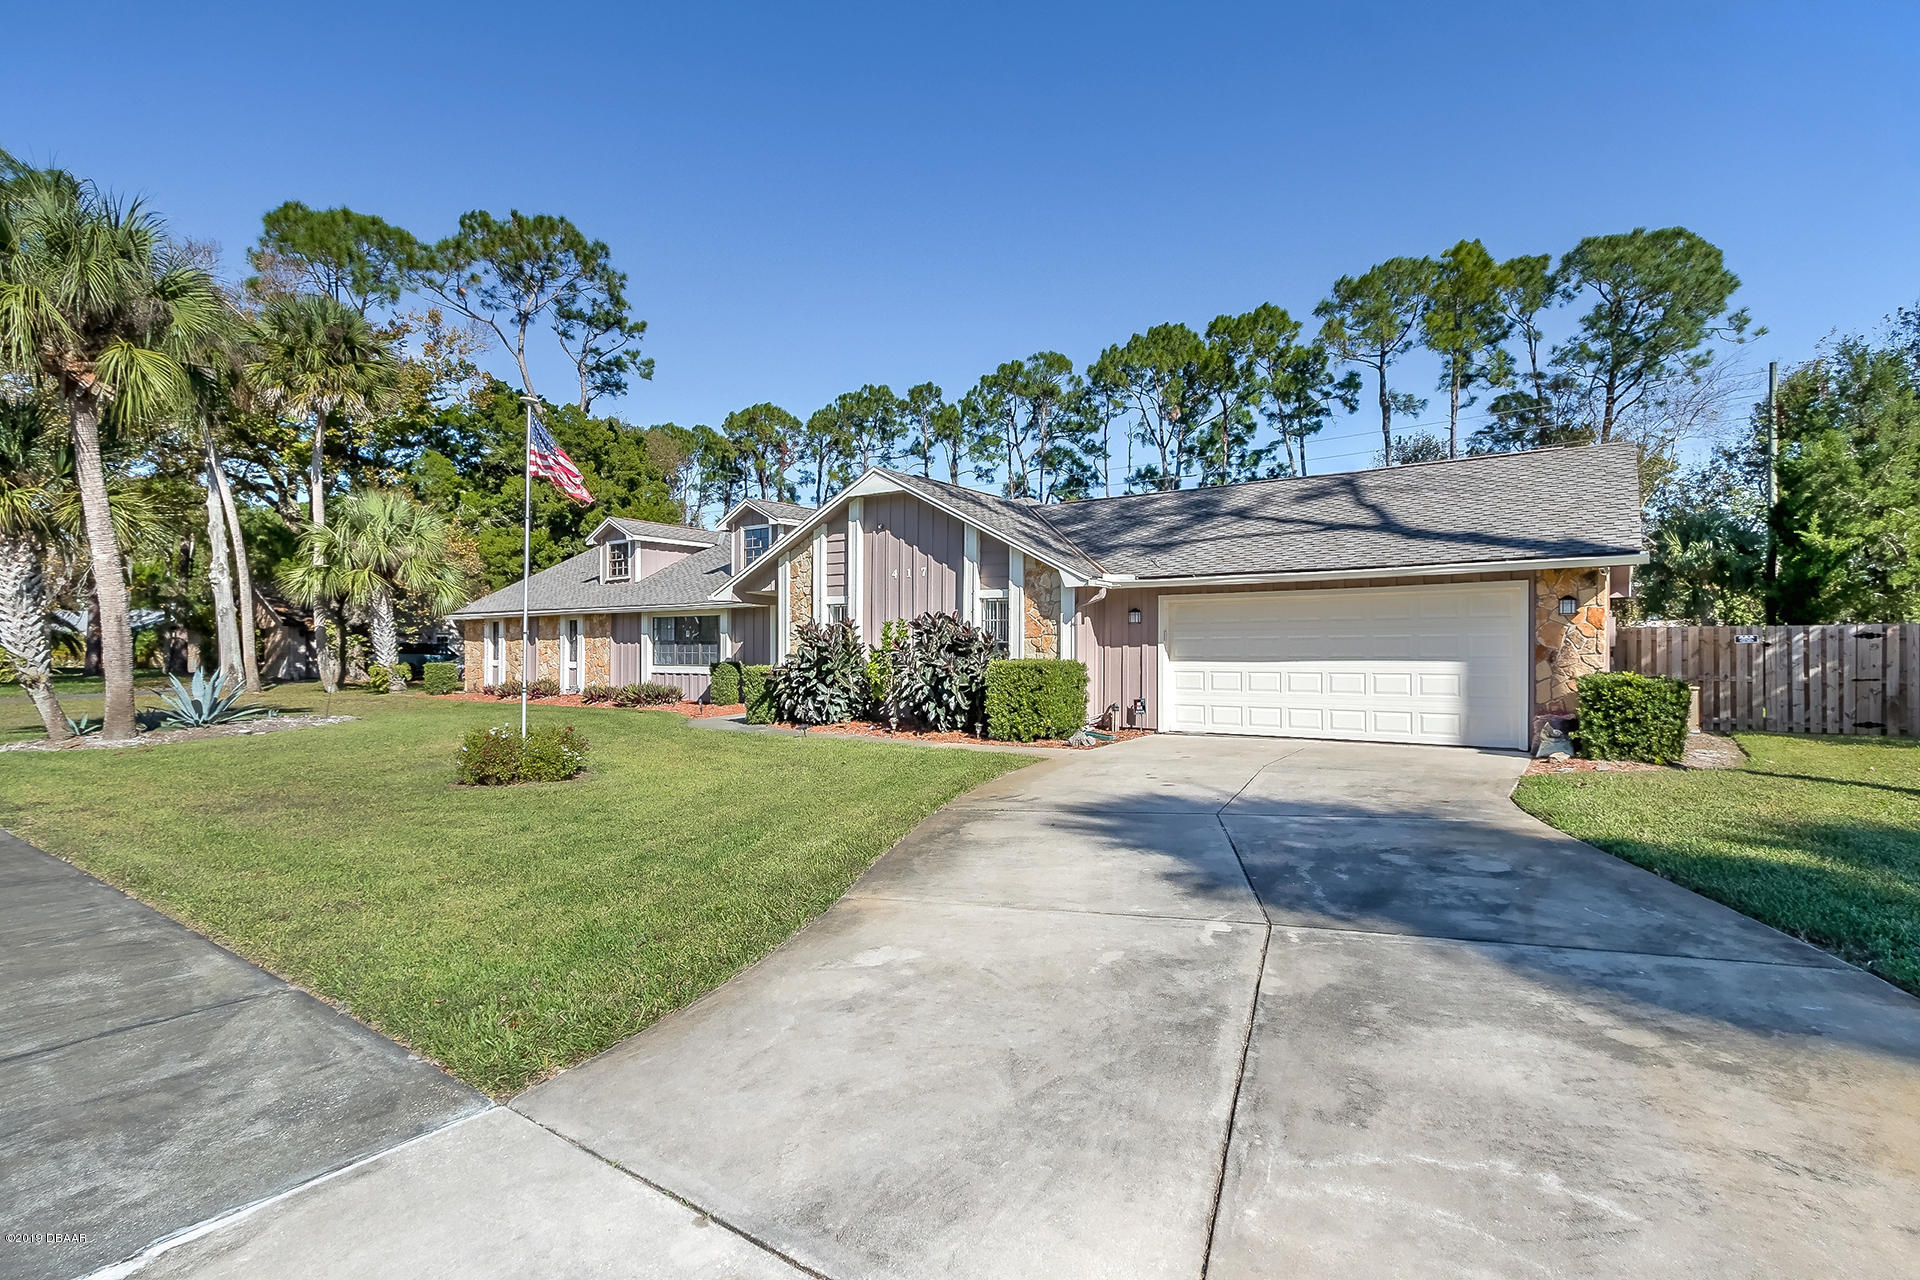 417 Pelican Bay Dr, South Daytona, Florida